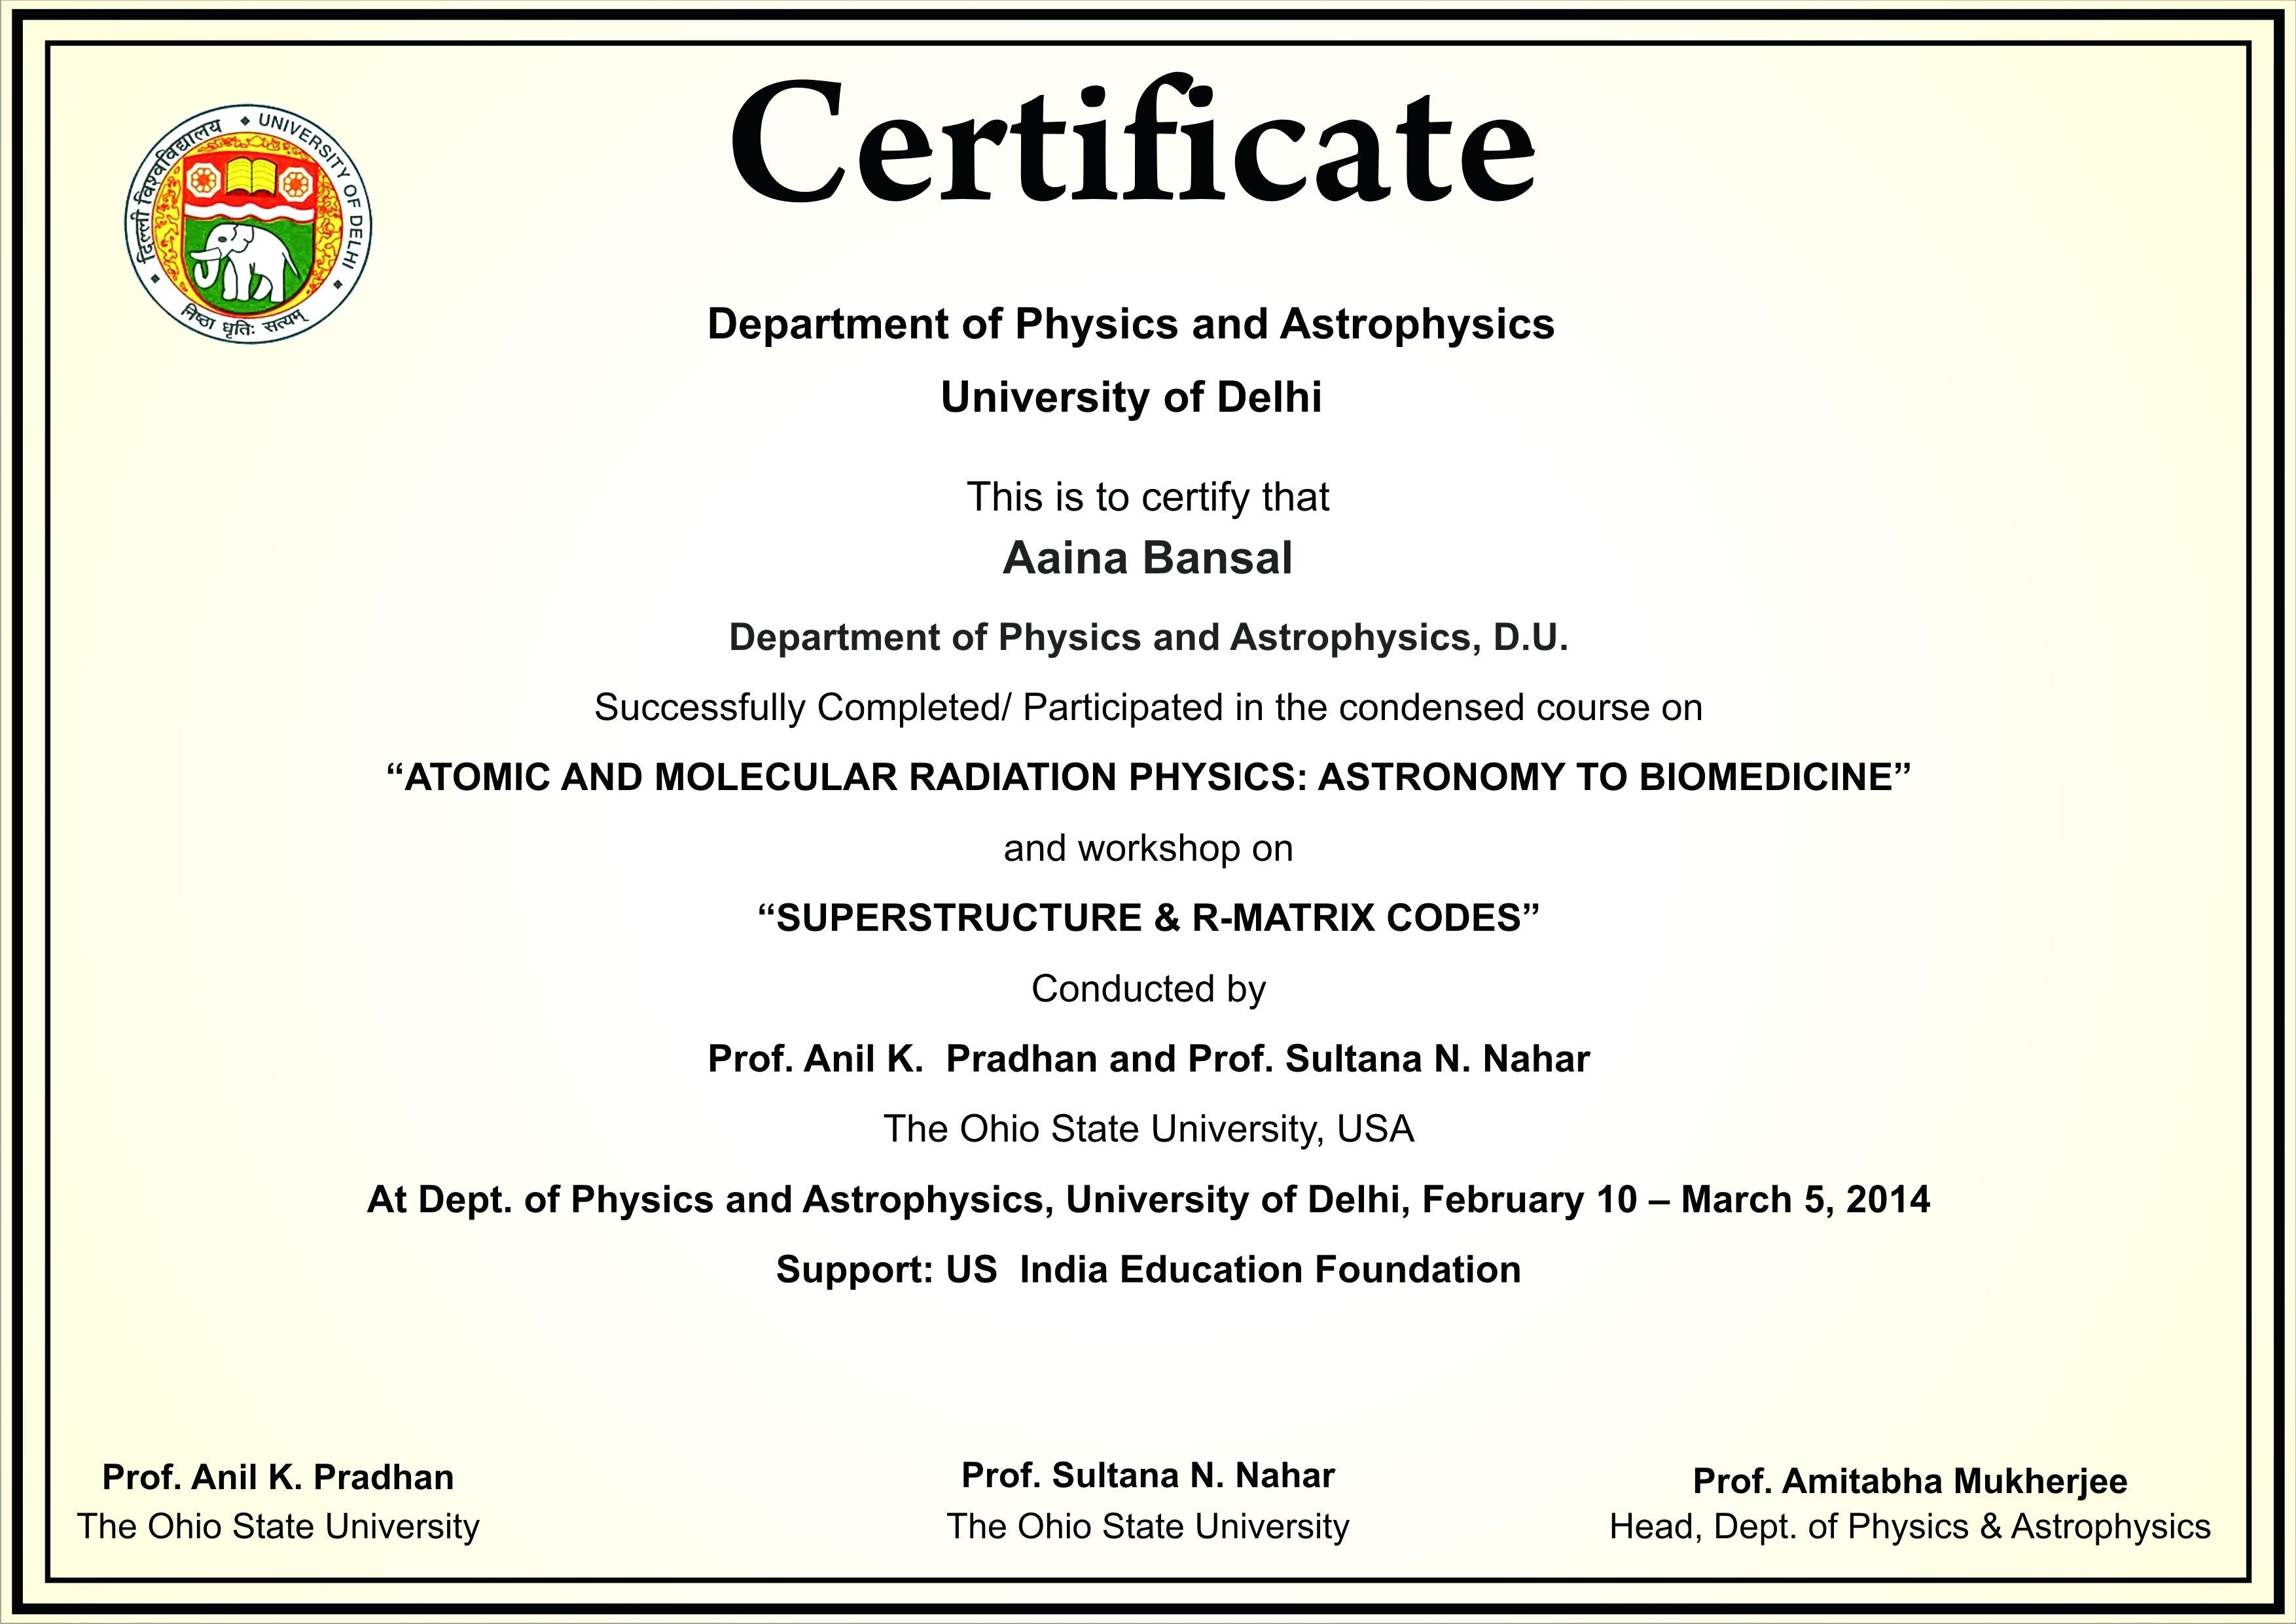 Example of Certificate of Participation in Workshop